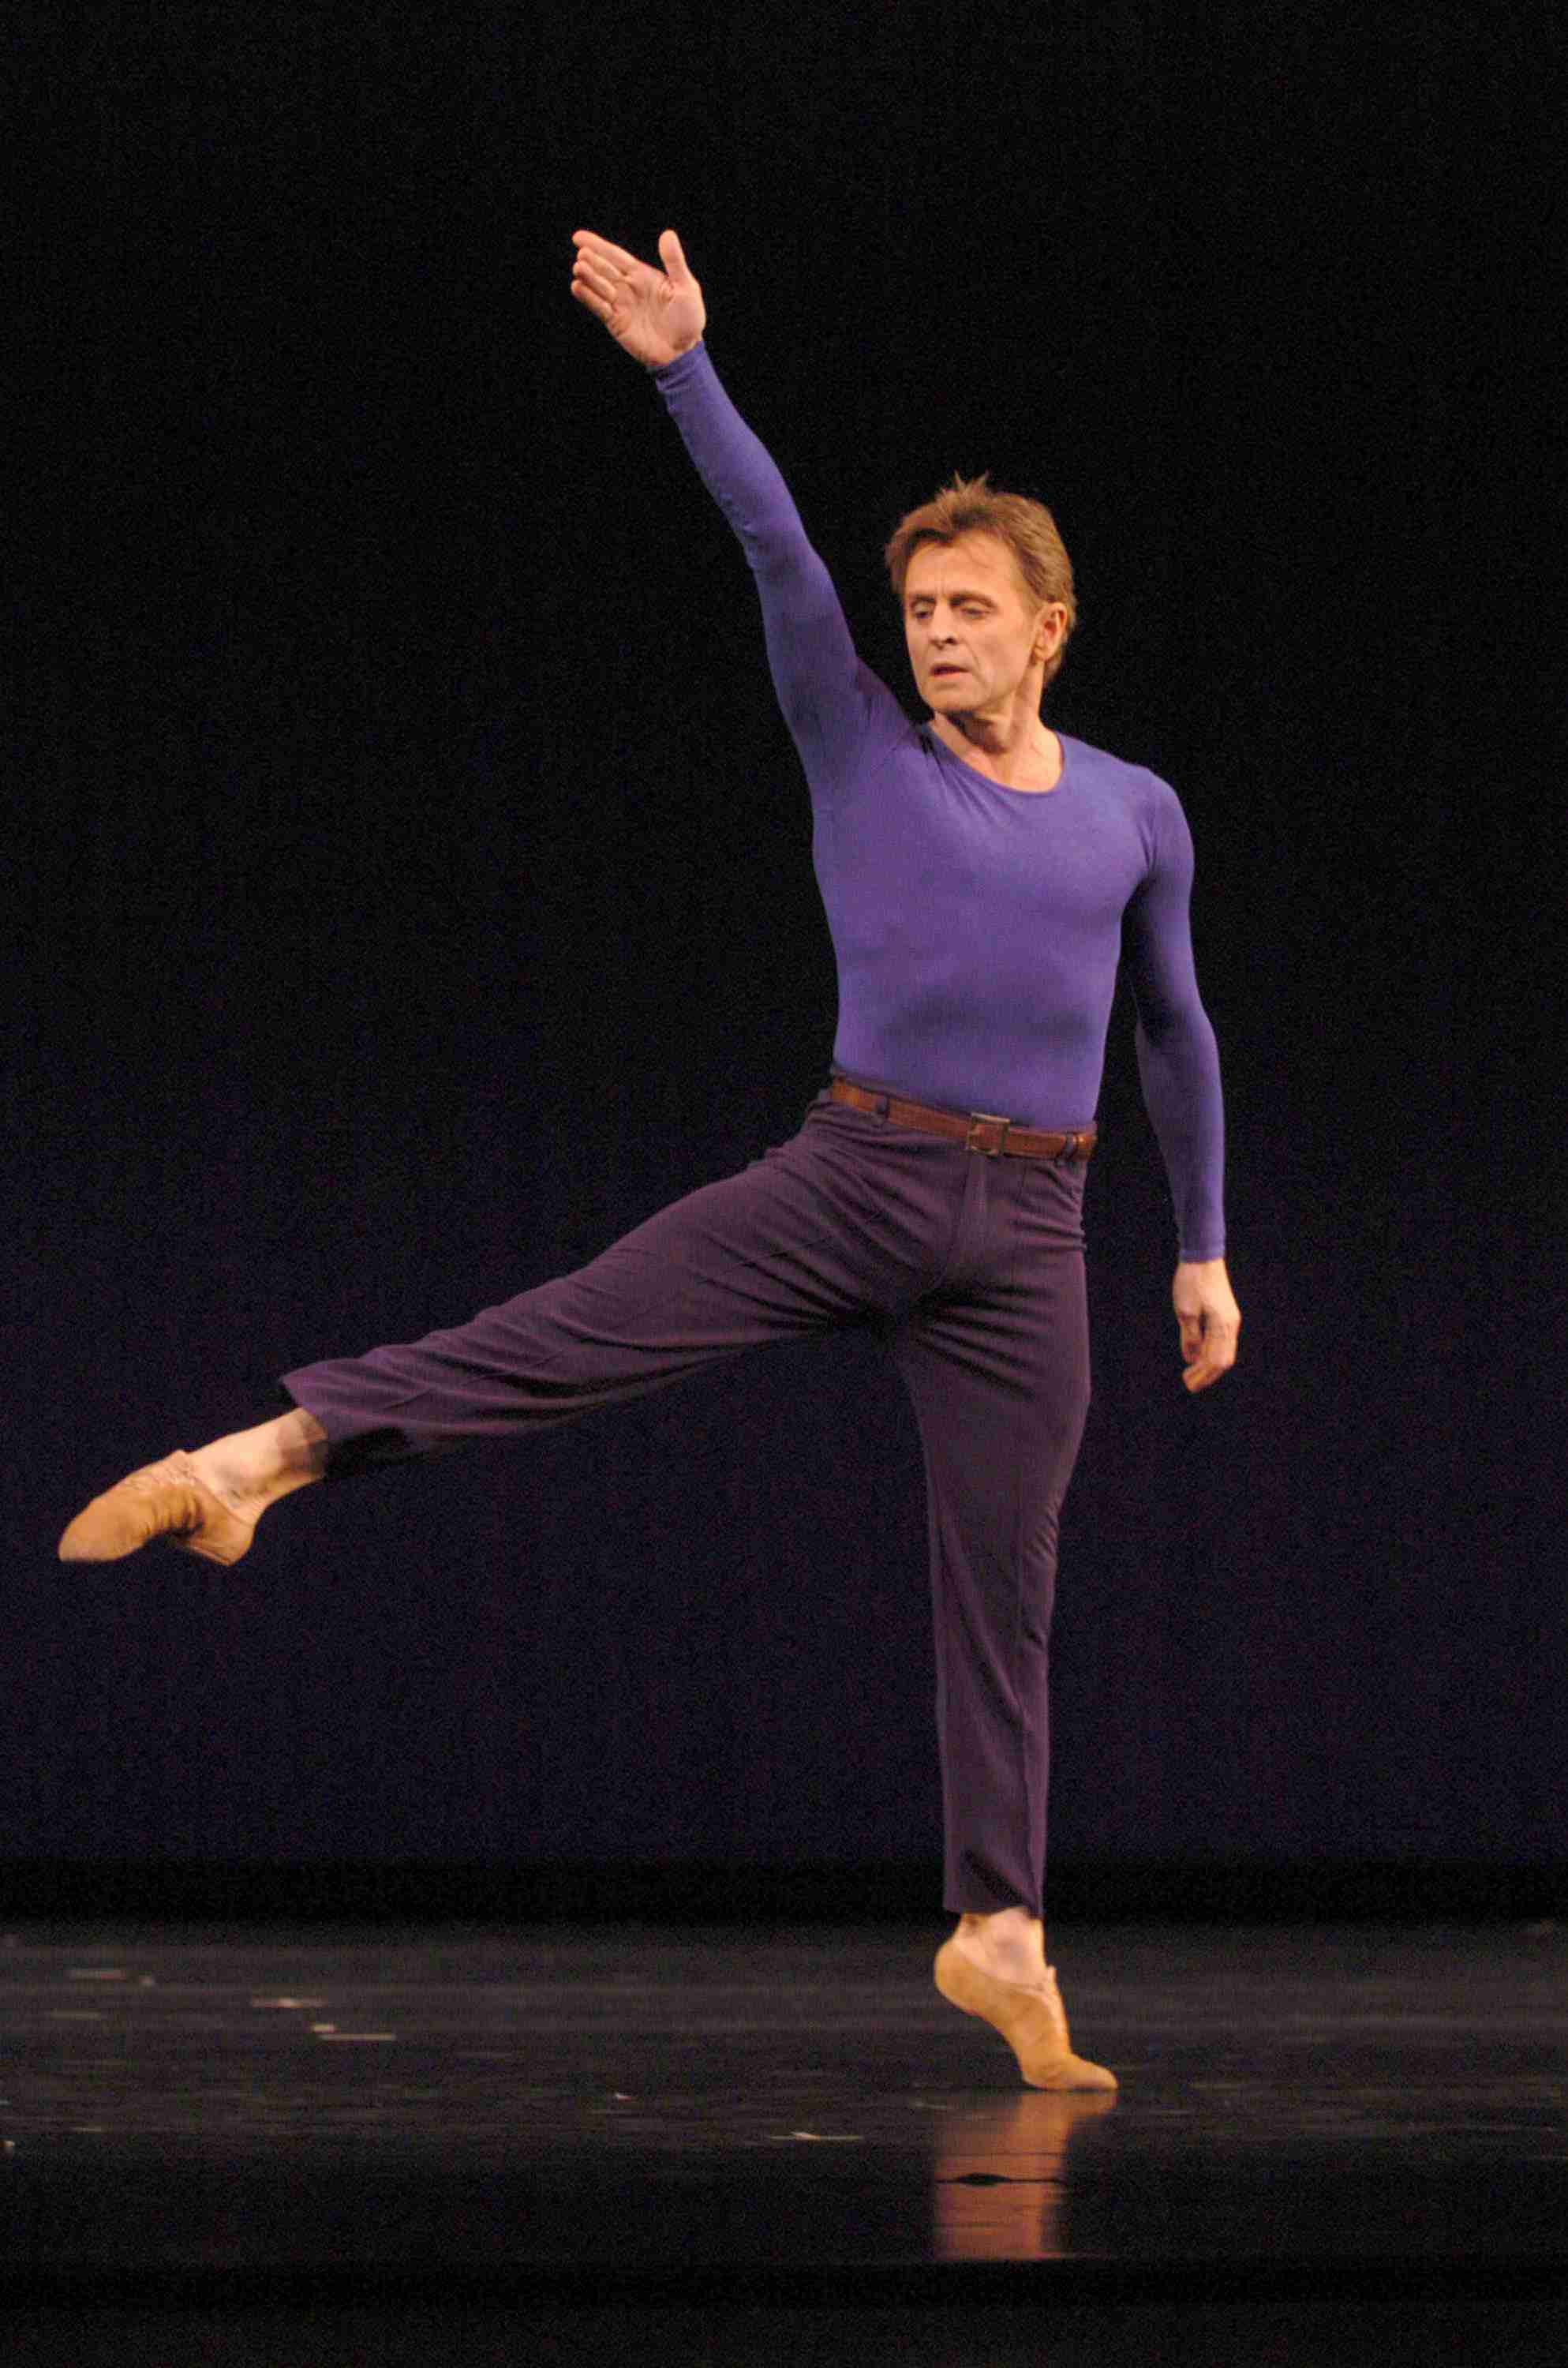 Solos With Piano Or Not... An Evening Of Music And Dance - Mikhail Baryshnikov